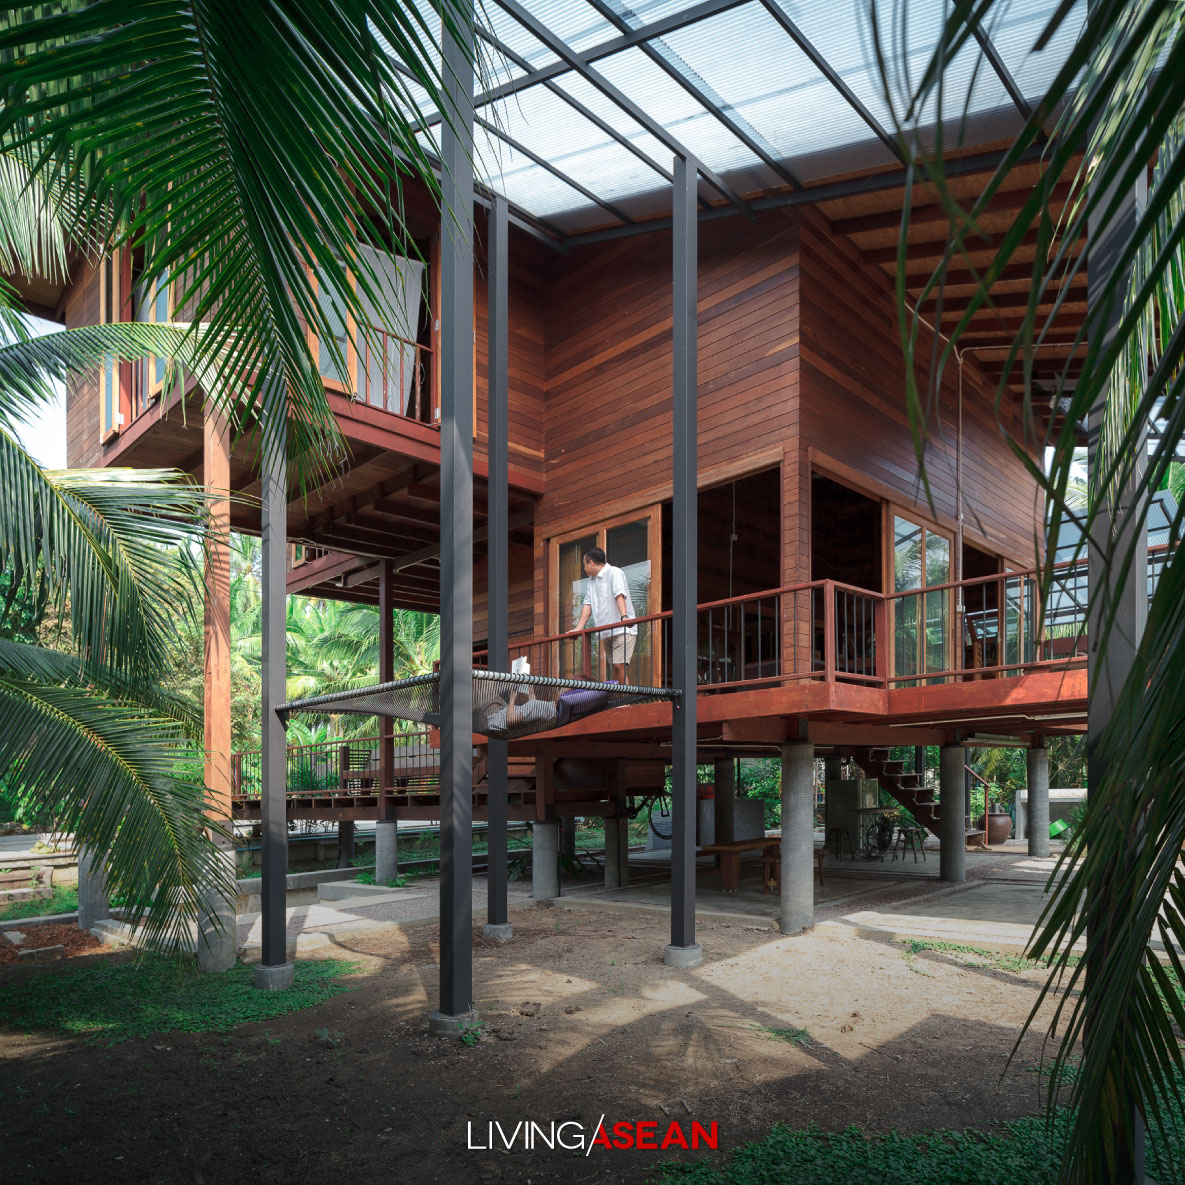 Beautiful House on Stilts in a Coconut Grove